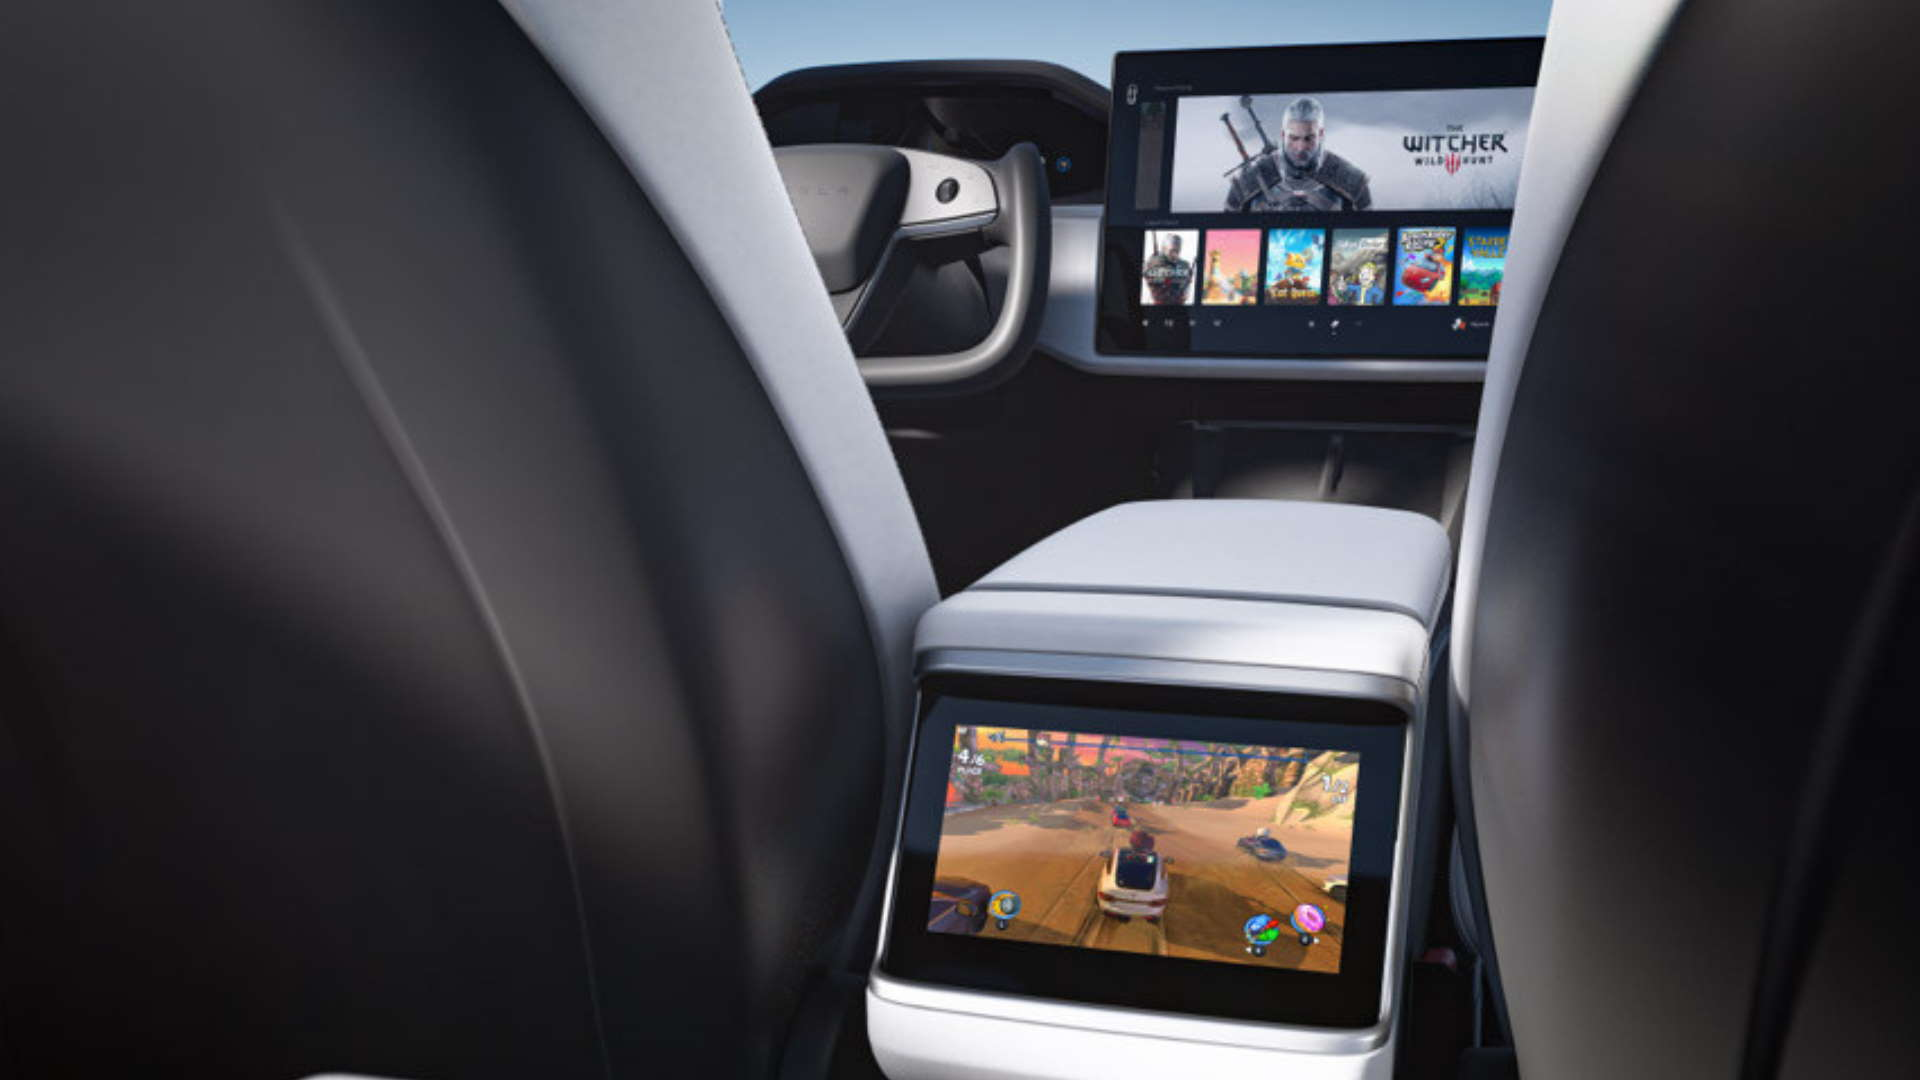 You can play Cyberpunk 2077 on the gaming PC inside the new Tesla Model S